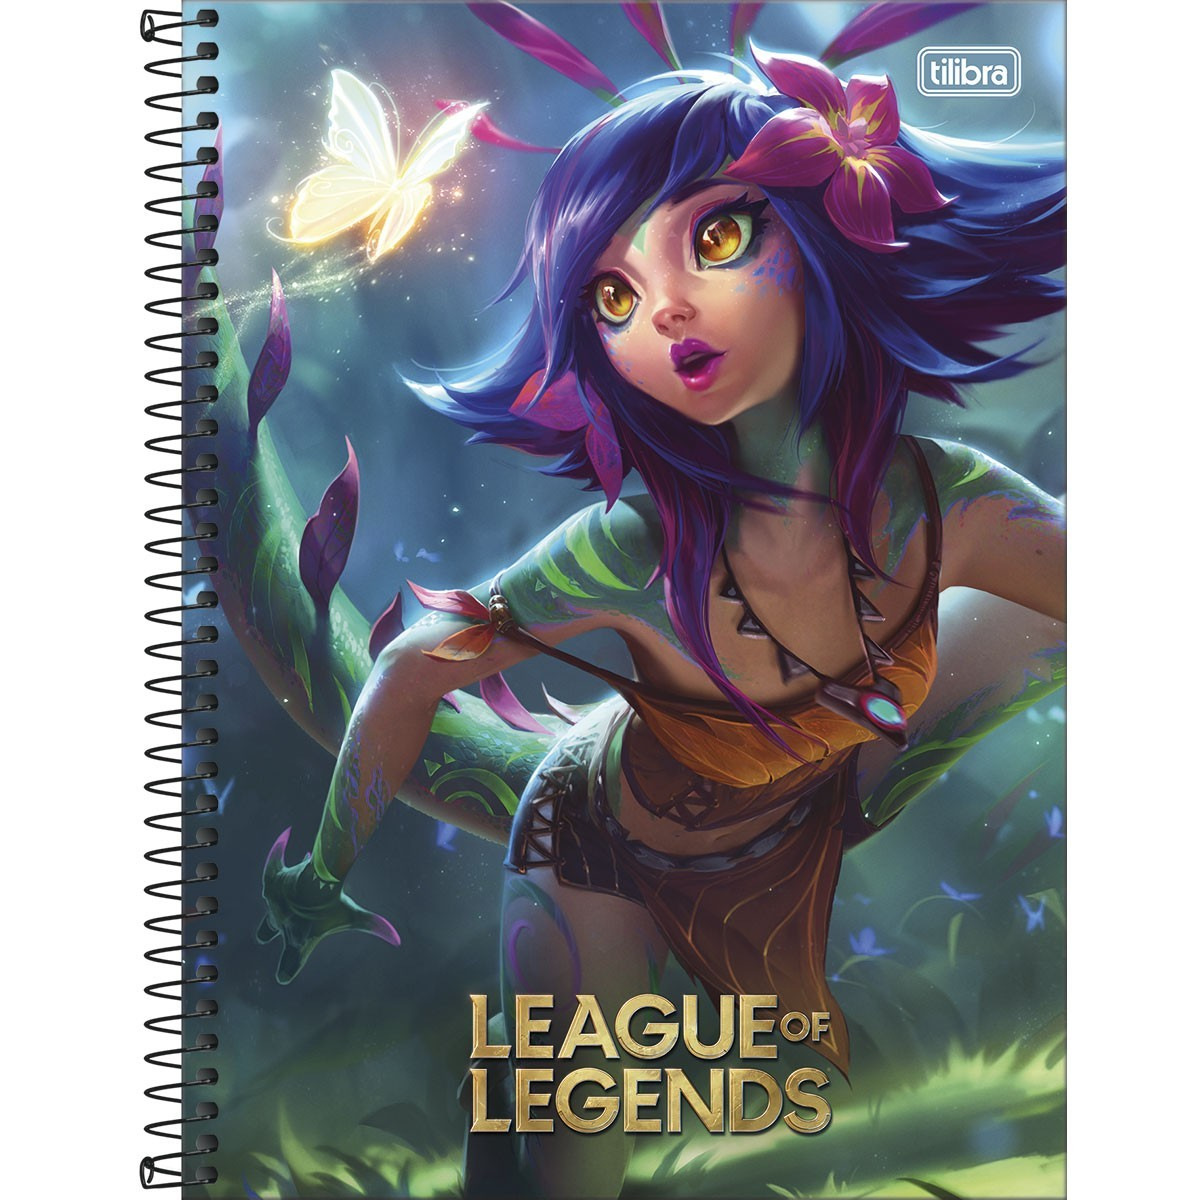 Caderno Espiral Capa Dura Universitário 10 Matérias League of Legends Nekko 160 Folhas